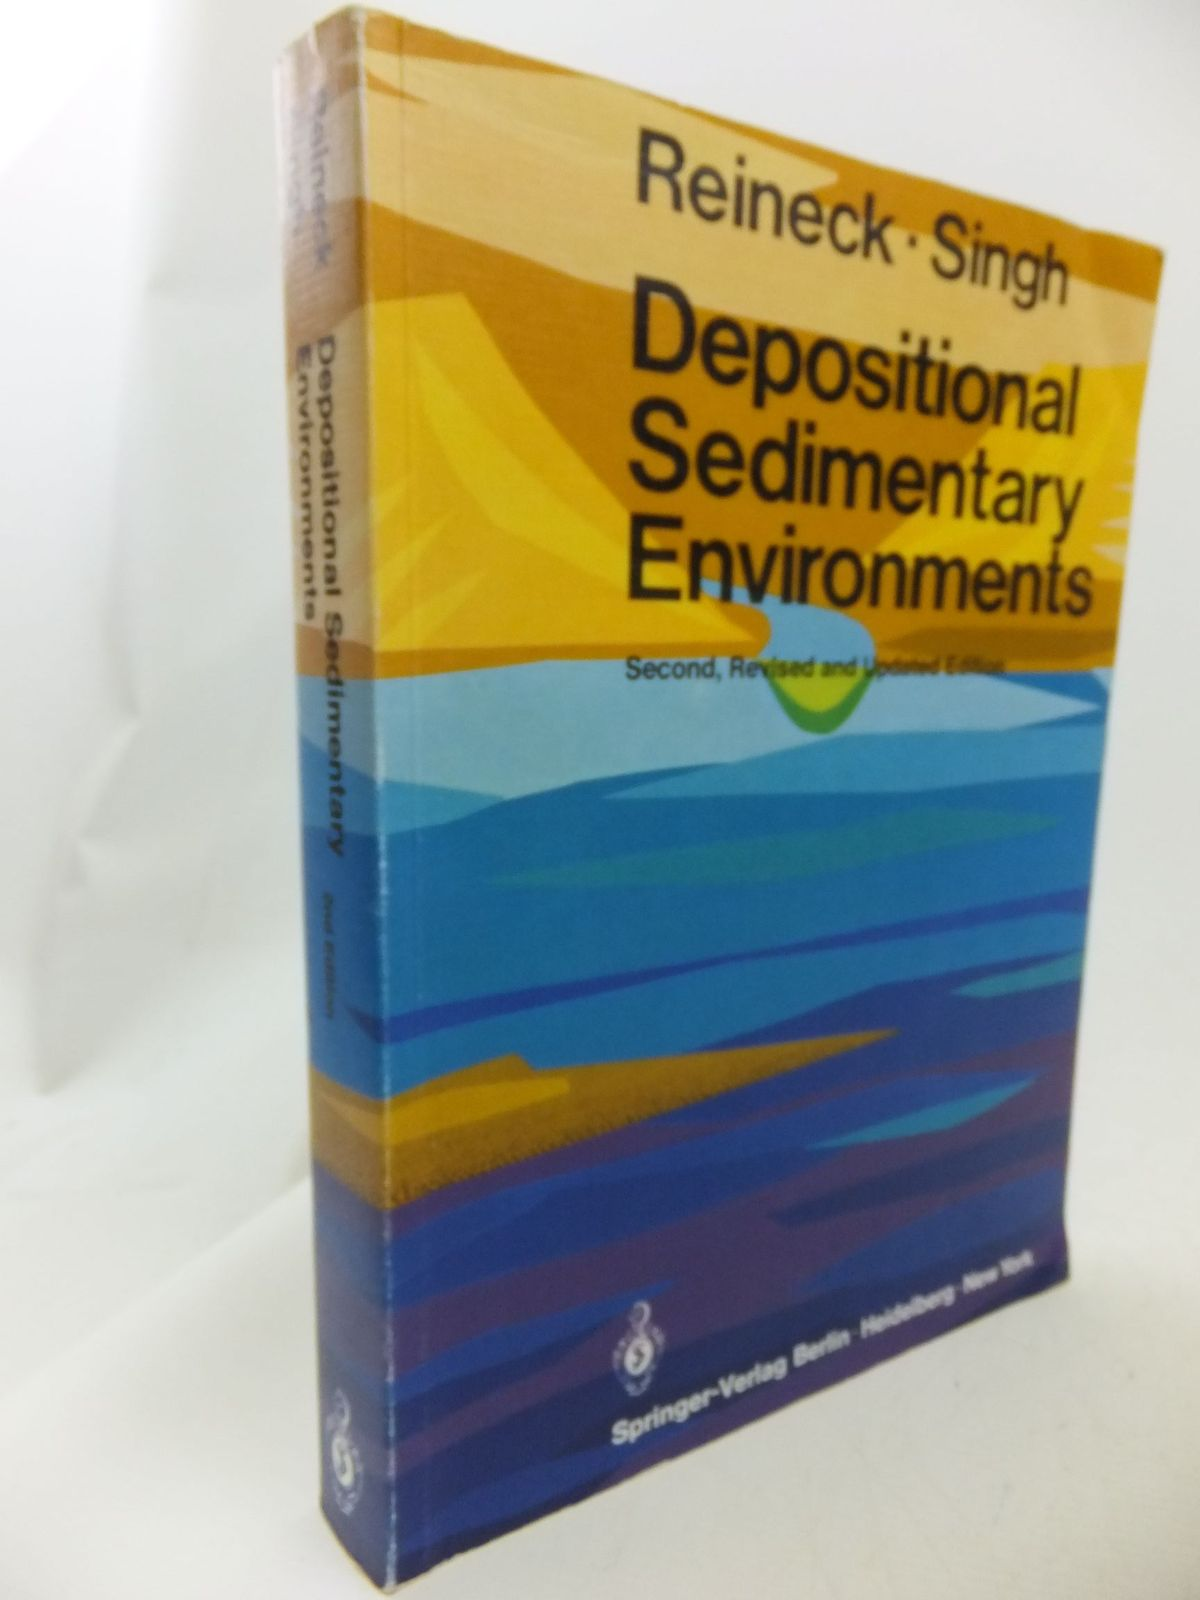 Photo of DEPOSITIONAL SEDIMENTRARY ENVIRONMENTS WITH REFERENCE TO TERRIGENOUS CLASTICS written by Reineck, H.E.<br />Singh, I.B. published by Springer-Verlag (STOCK CODE: 1710869)  for sale by Stella & Rose's Books